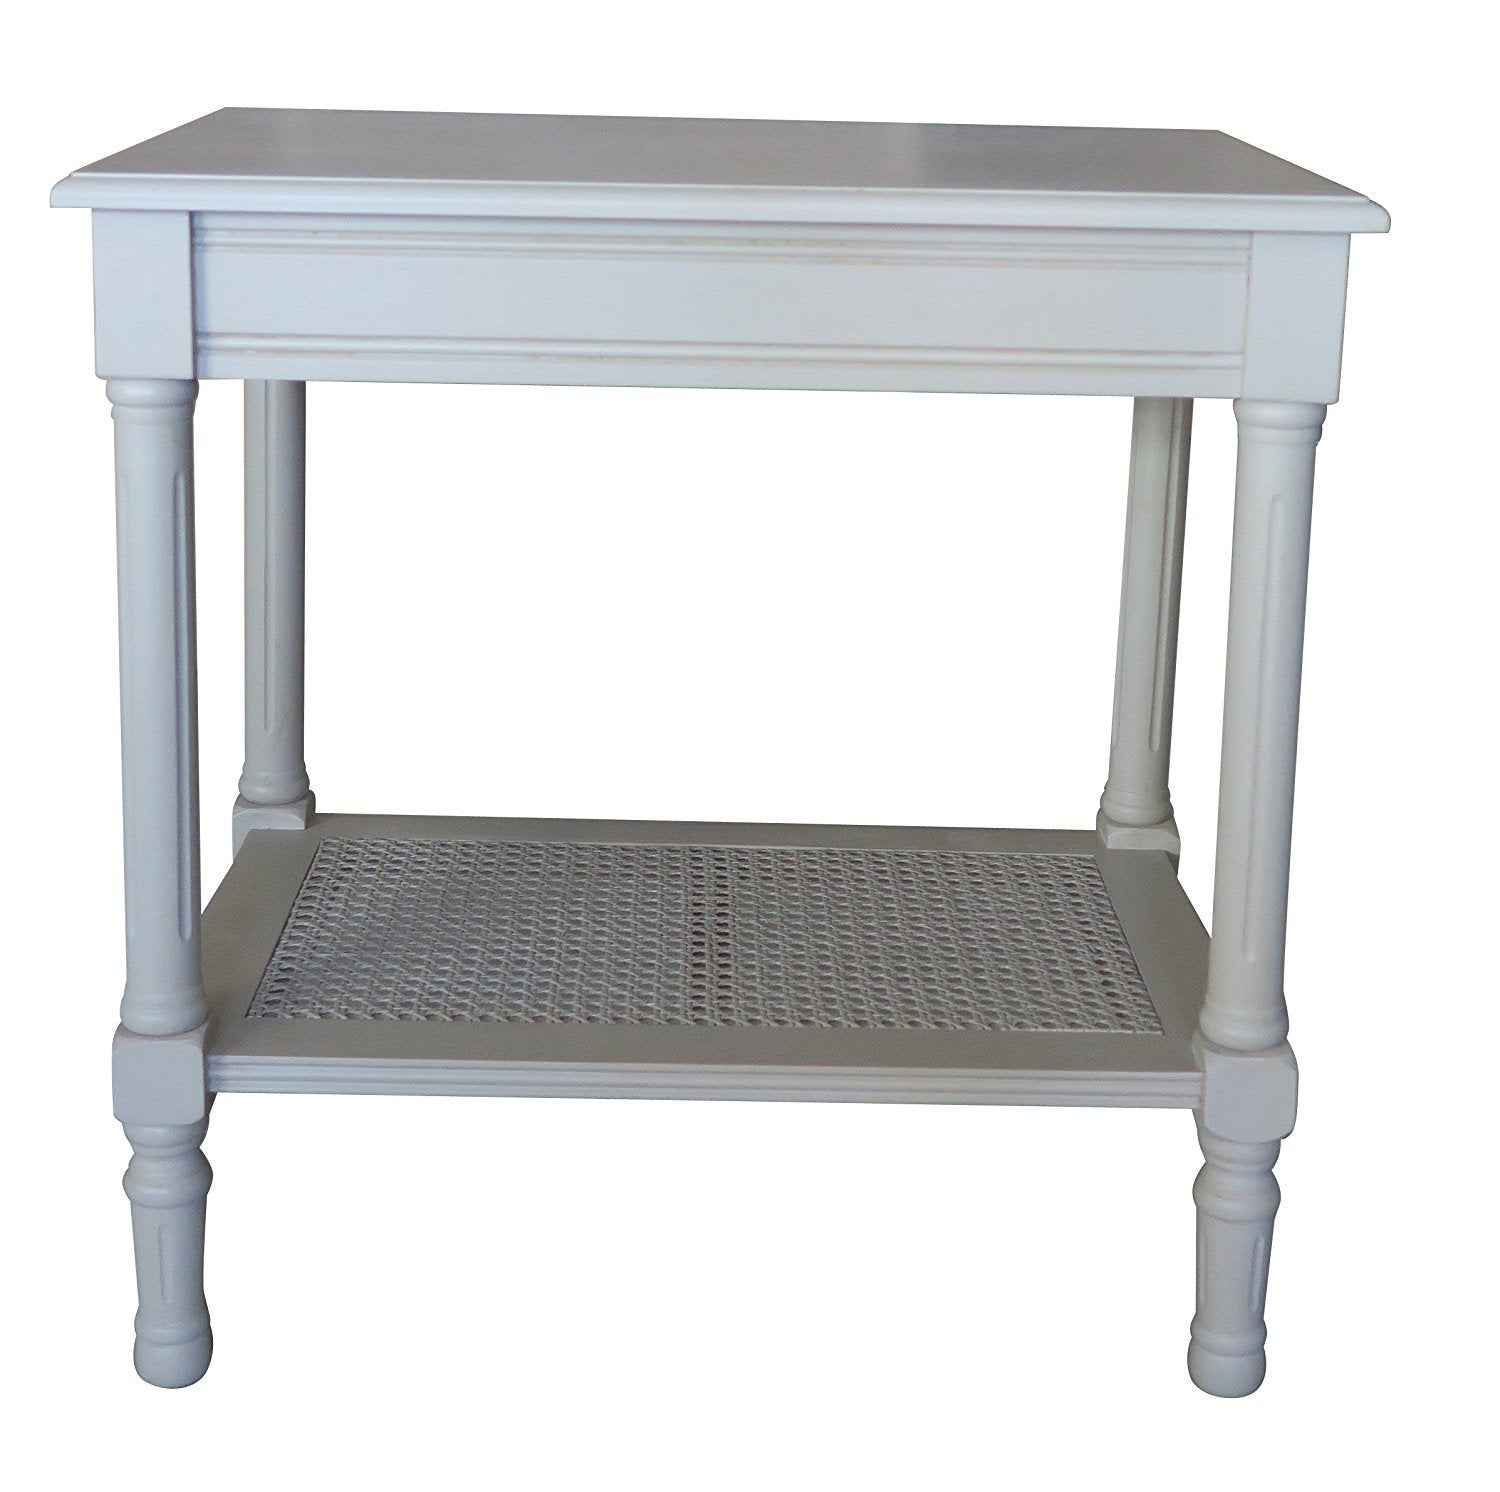 Side table with drawer and shelf - Jamestown Side Table With Rattan Shelf